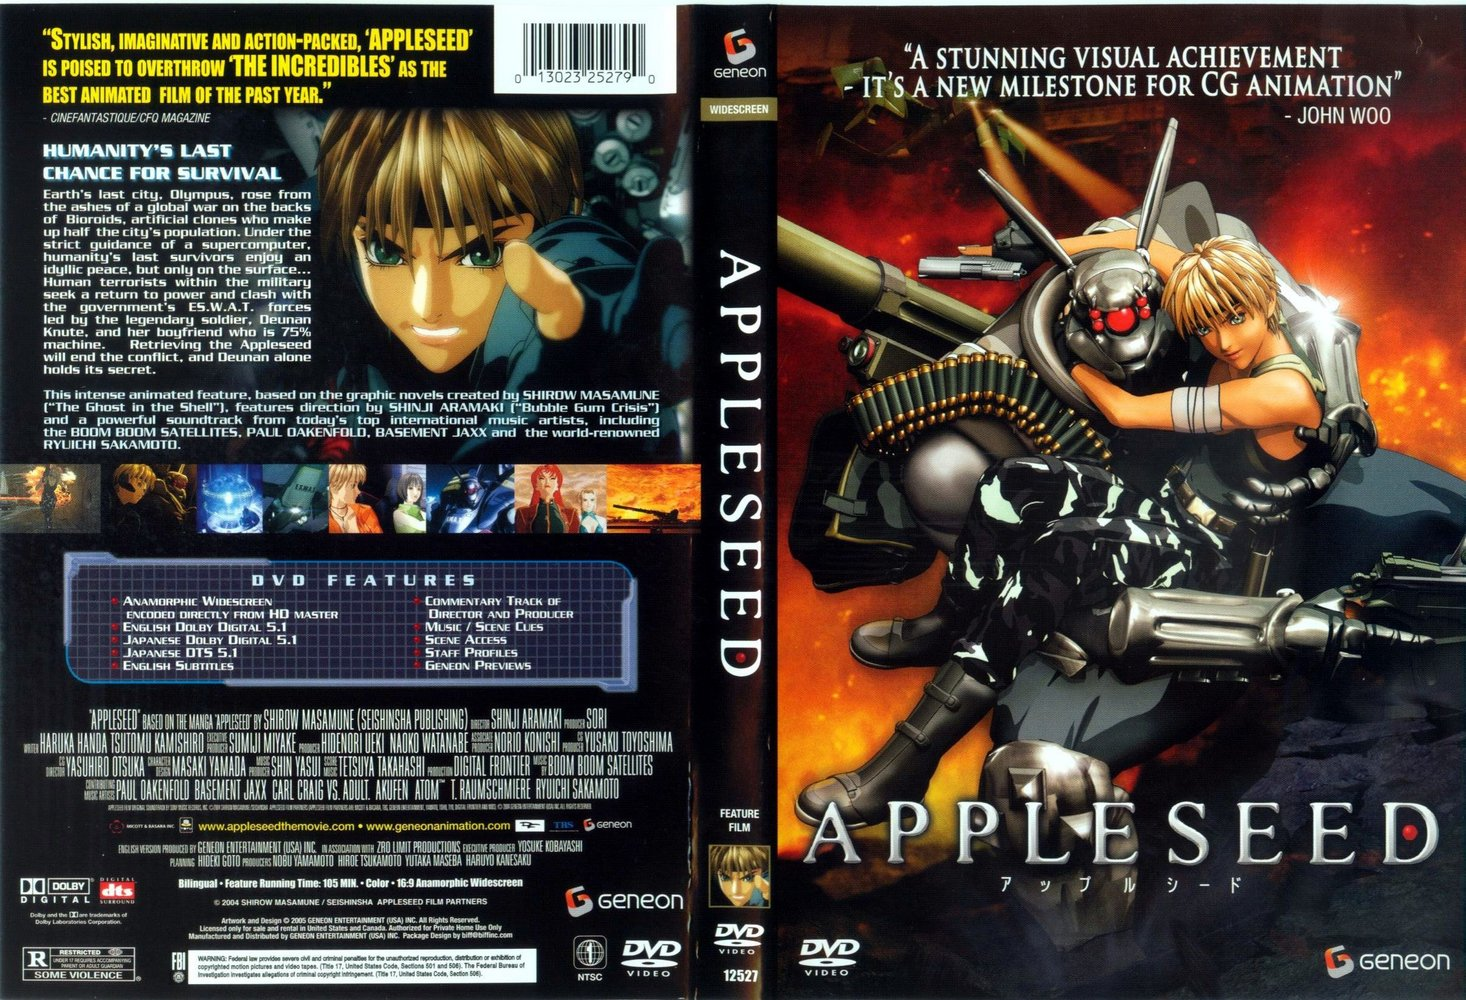 Appleseed film  Wikipedia